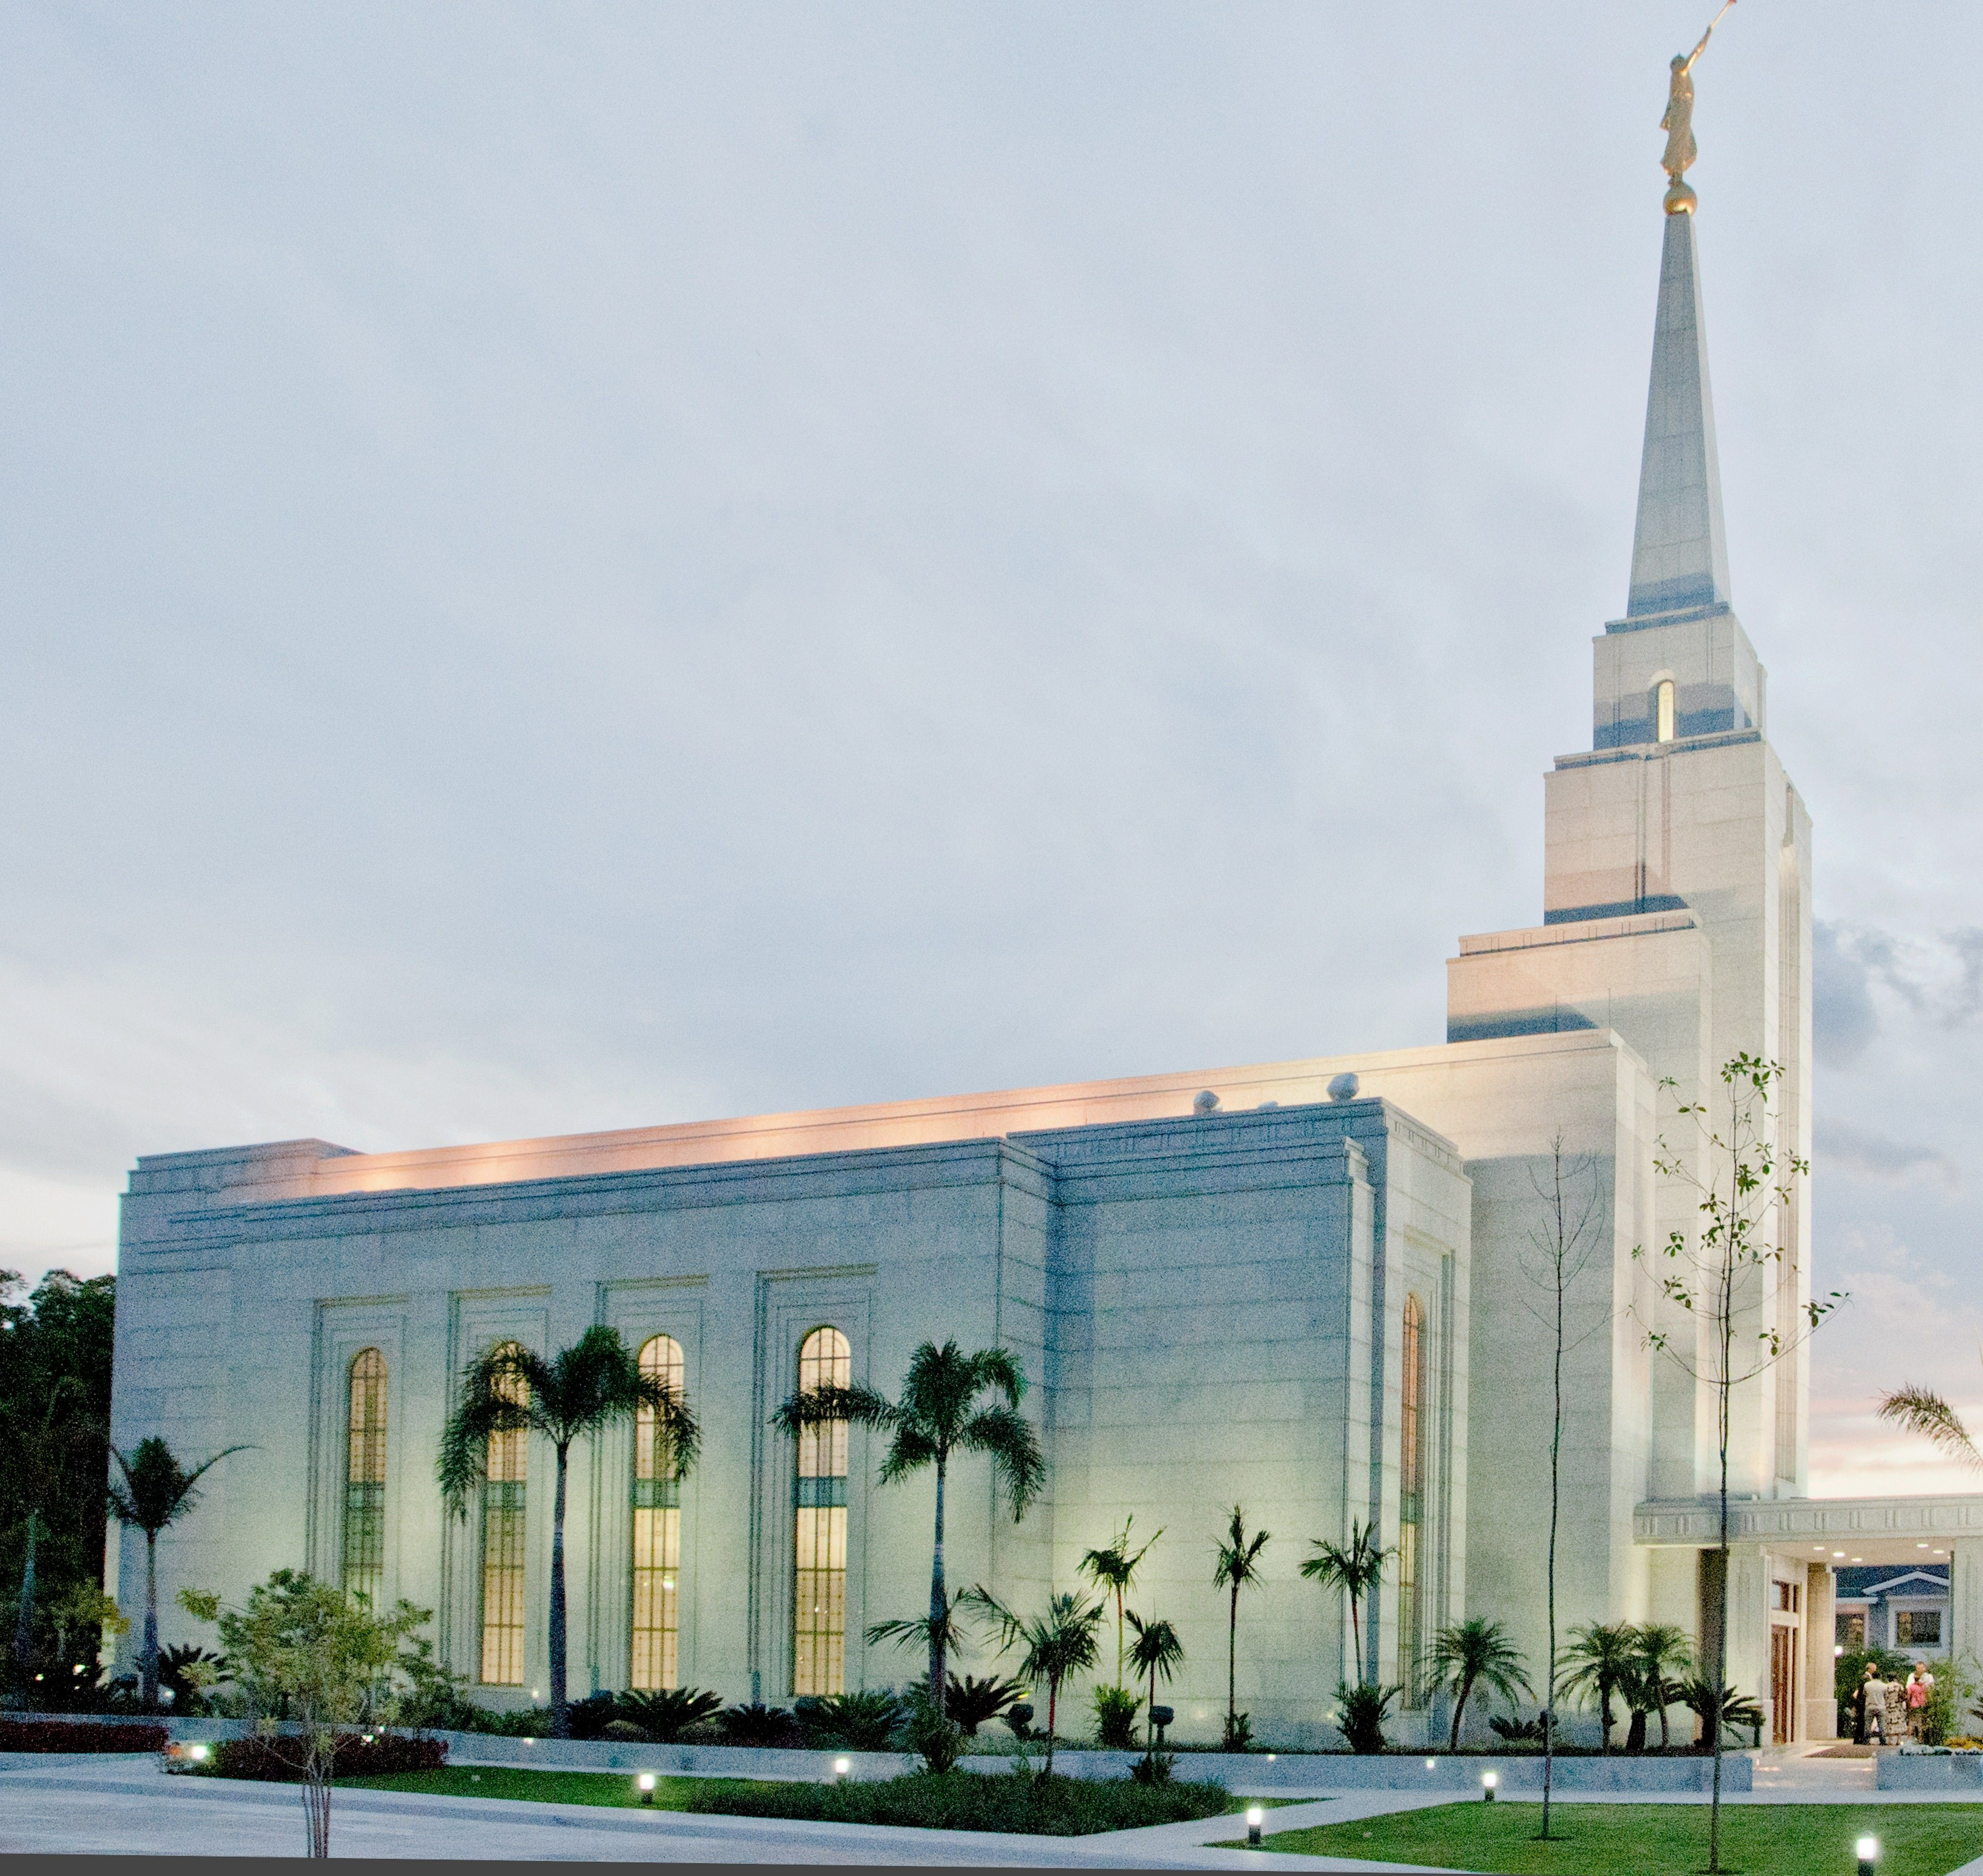 The Manaus Brazil Temple side view, including scenery.